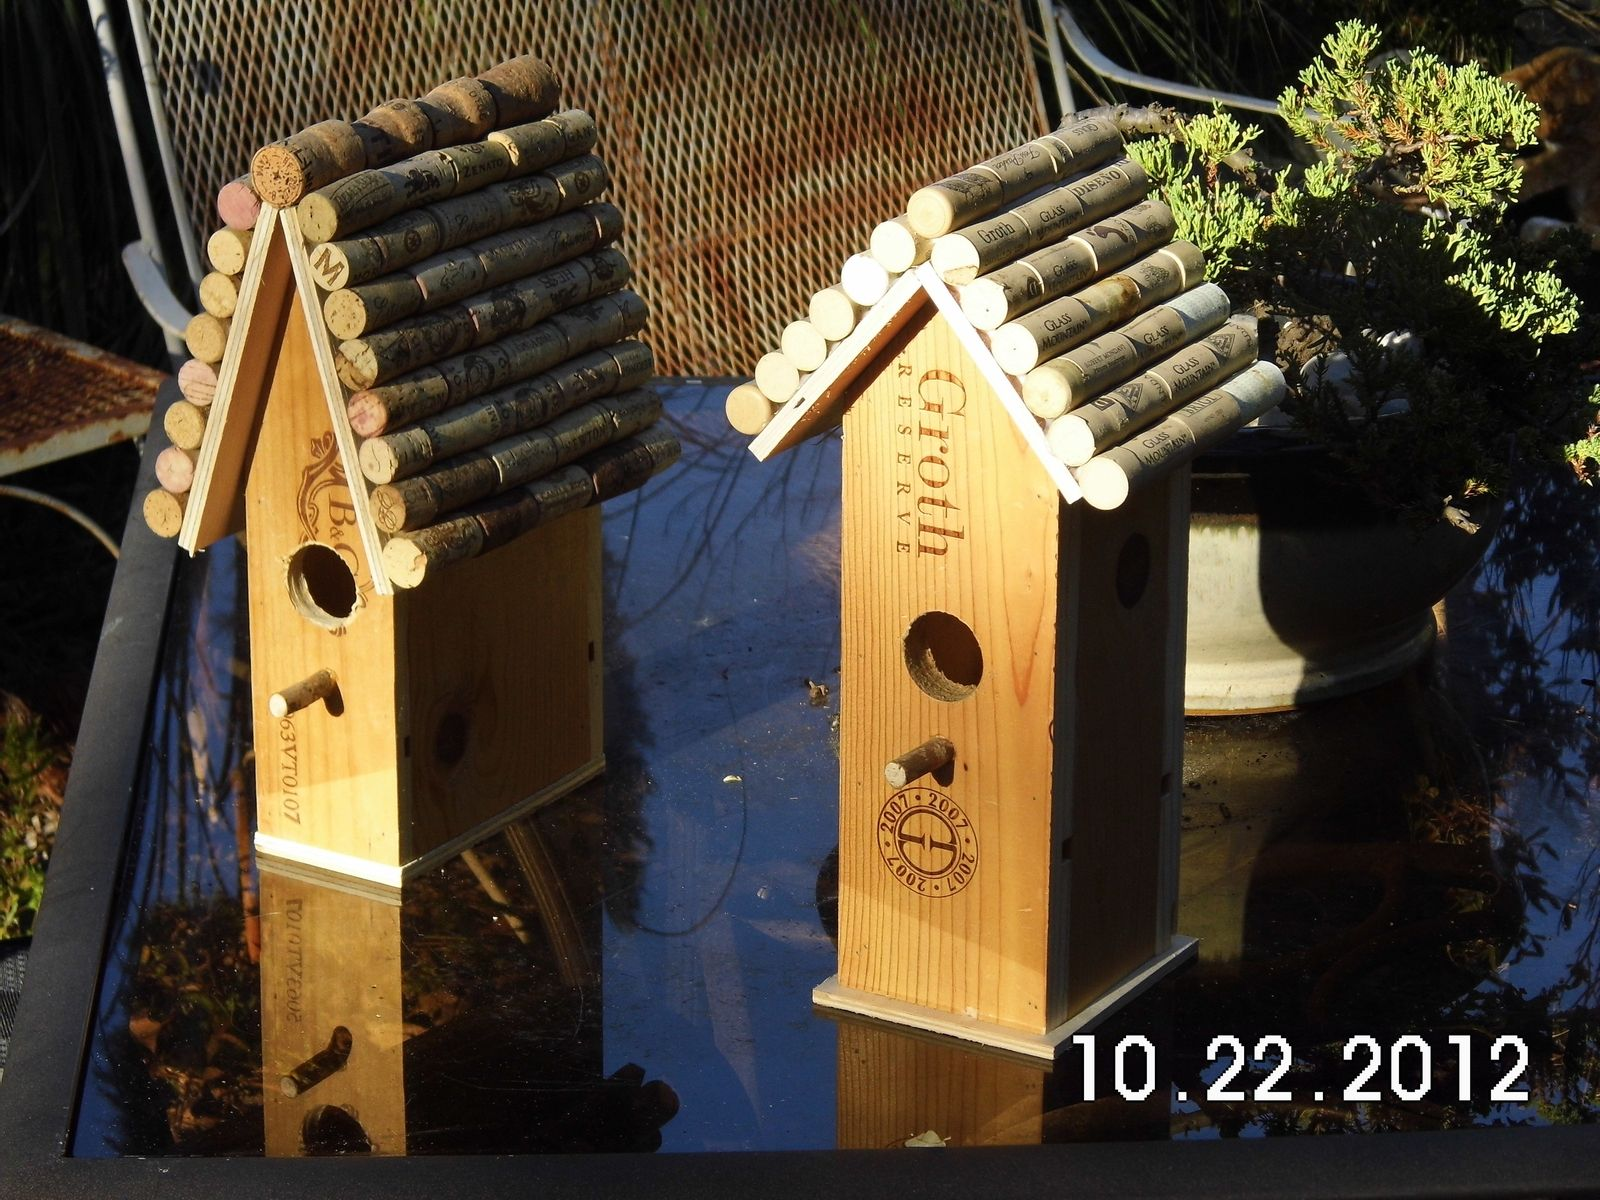 Hand Crafted Wine Box Birdhouse by Birdhouses By George ... on western house plans, cedar ridge house plan, purple martin house building plans, red-headed woodpecker house plans, cedar greenhouse plans, cedar storage plans, cedar fence plans, cedar wood, cedar table plans, bird feeder plans, cedar birdhouses and feeders, cedar lighthouse plans, cedar shelf plans, cedar bluebird house, cedar home plans, simple birdhouse plans, cedar barn plans, cedar furniture plans, cowboy cedar birdhouse plans, cedar bench plans,